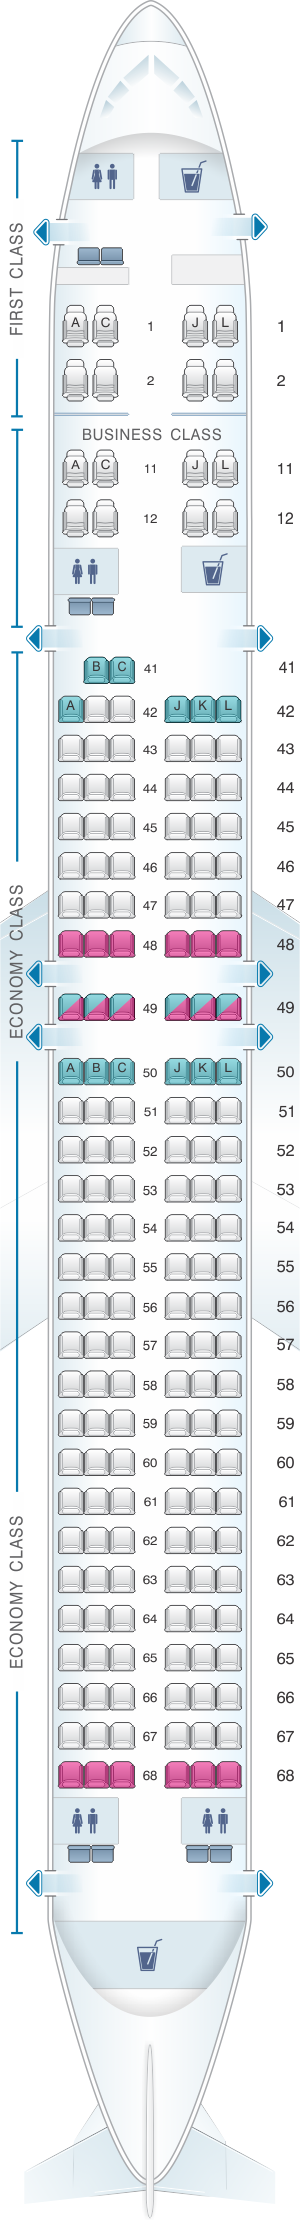 Seat map for Xiamen Airlines Boeing B757 200 180pax